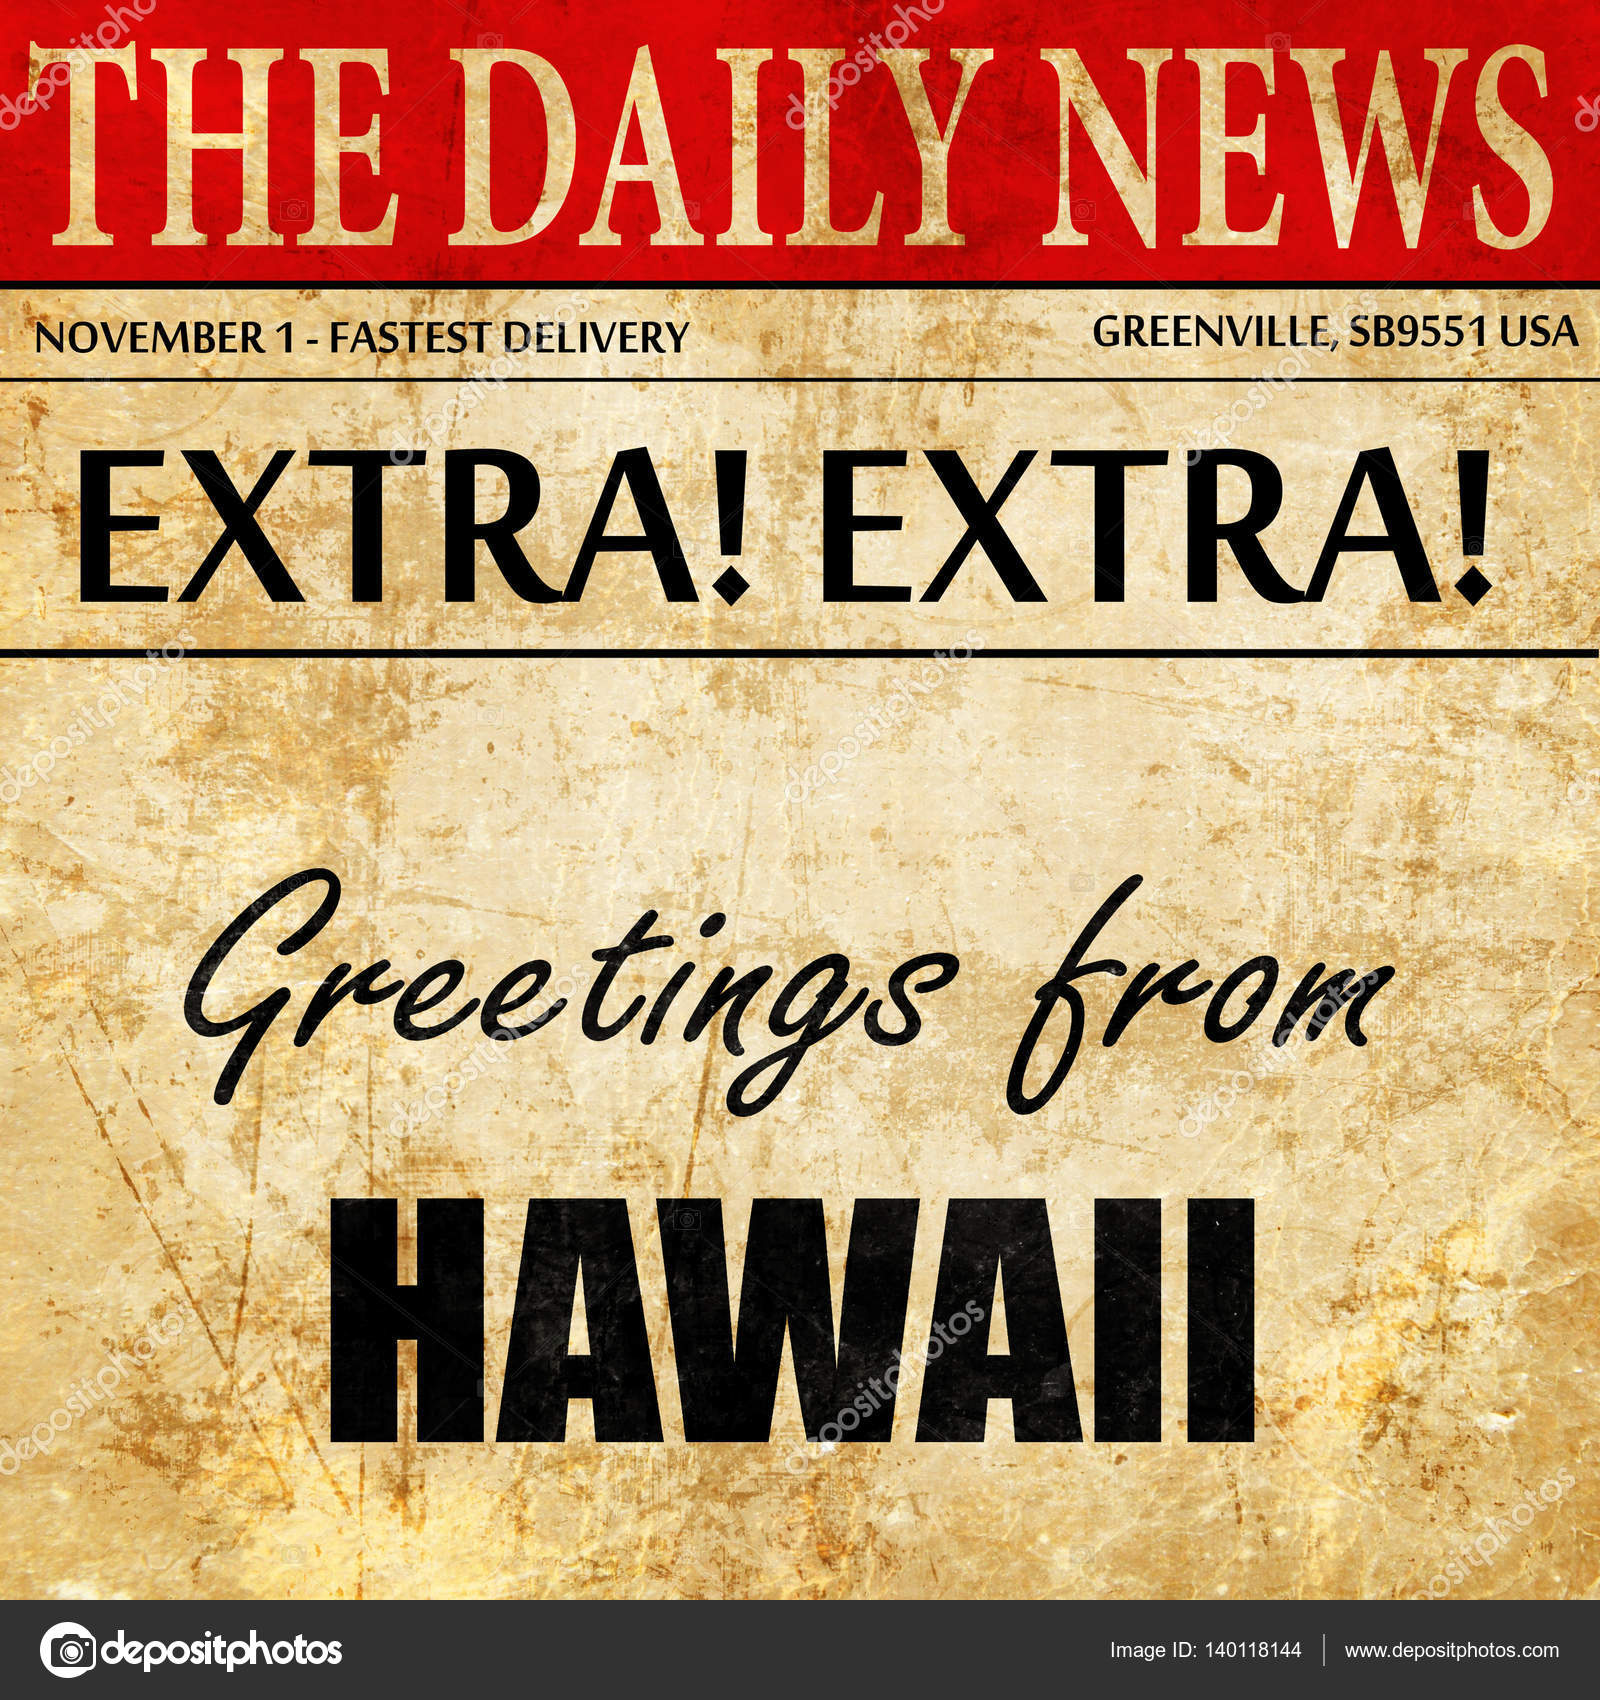 Greetings from hawaii newspaper article text stock photo greetings from hawaii newspaper article text stock photo kristyandbryce Choice Image